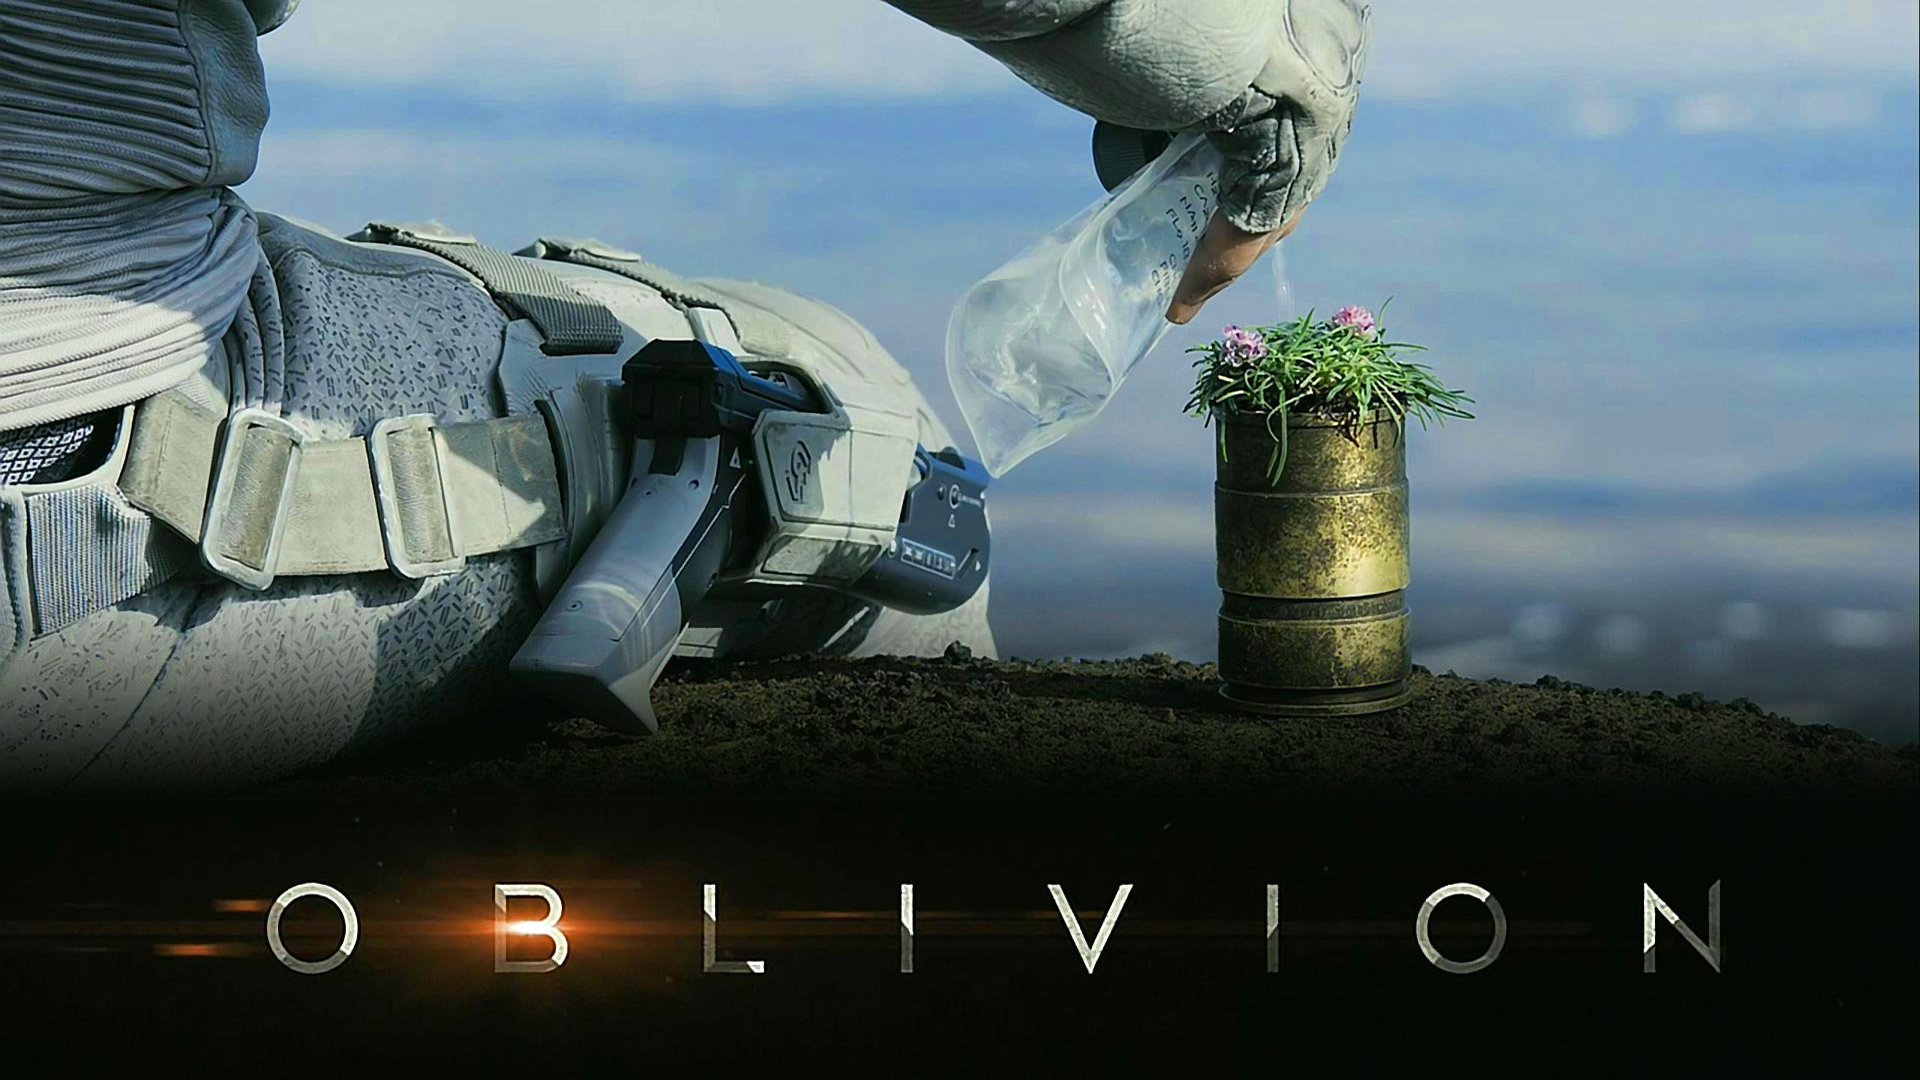 57 Oblivion HD Wallpapers | Background